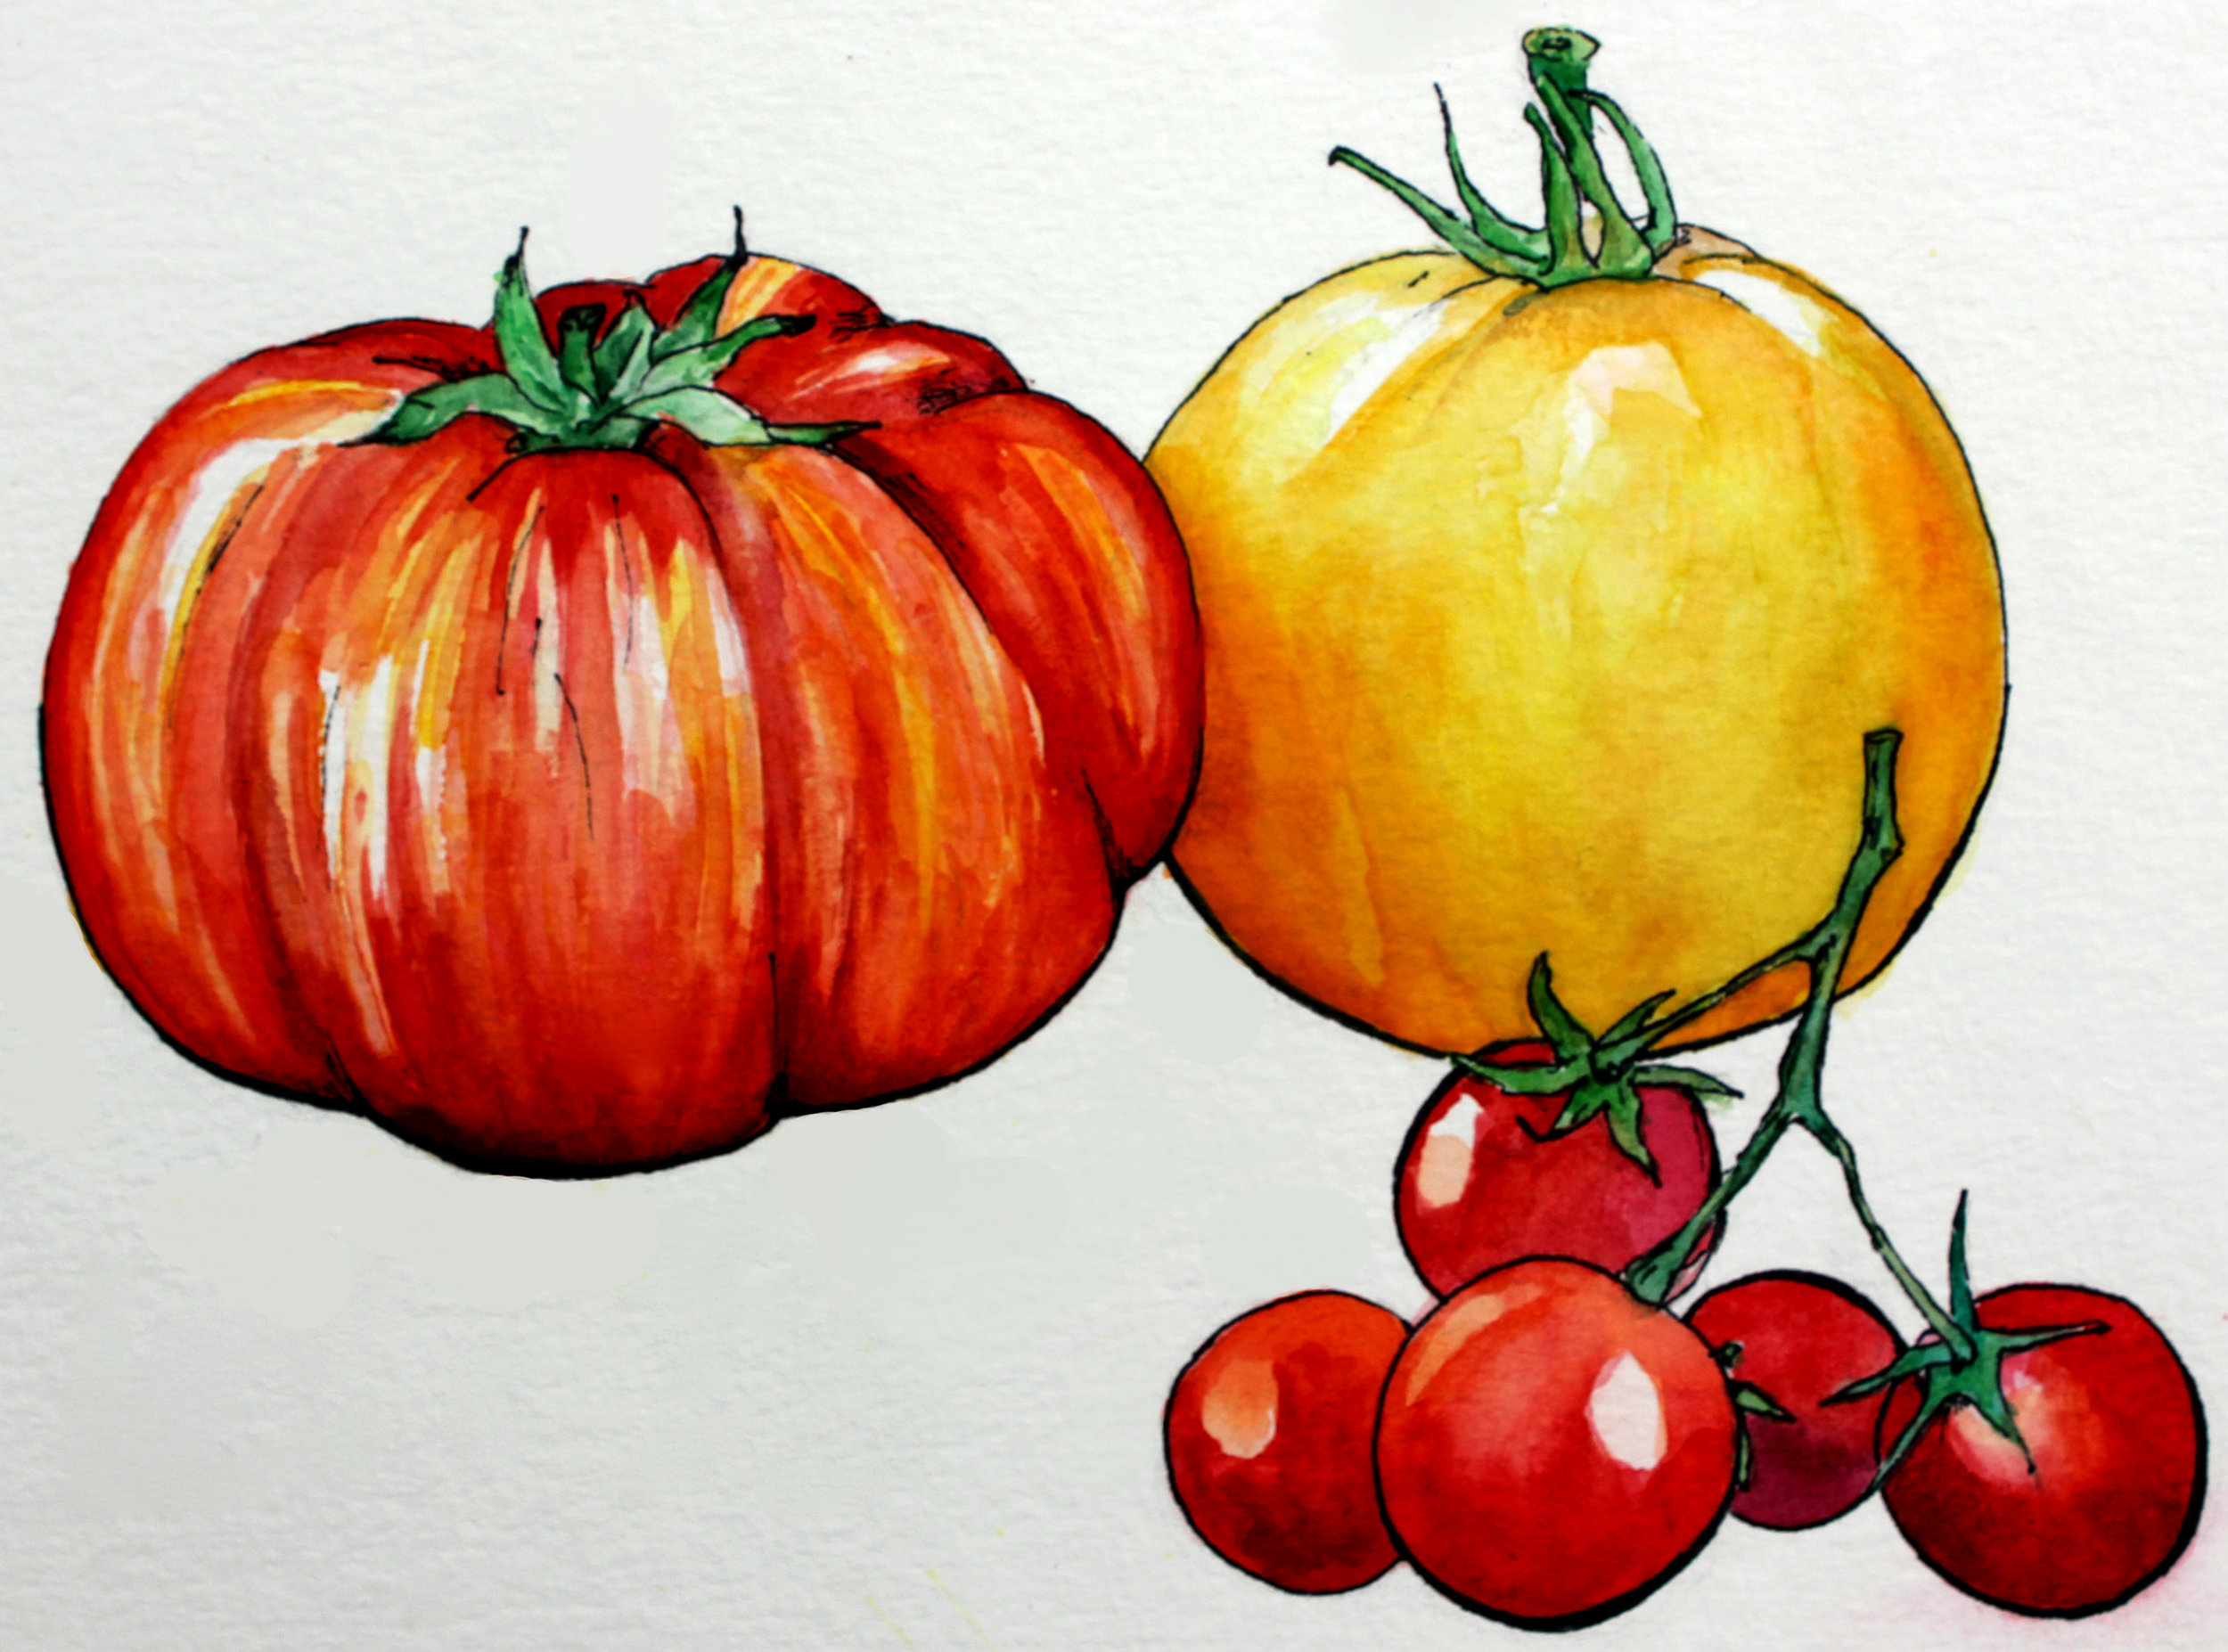 ink and watercolor tomatoes ashleychase.jpg